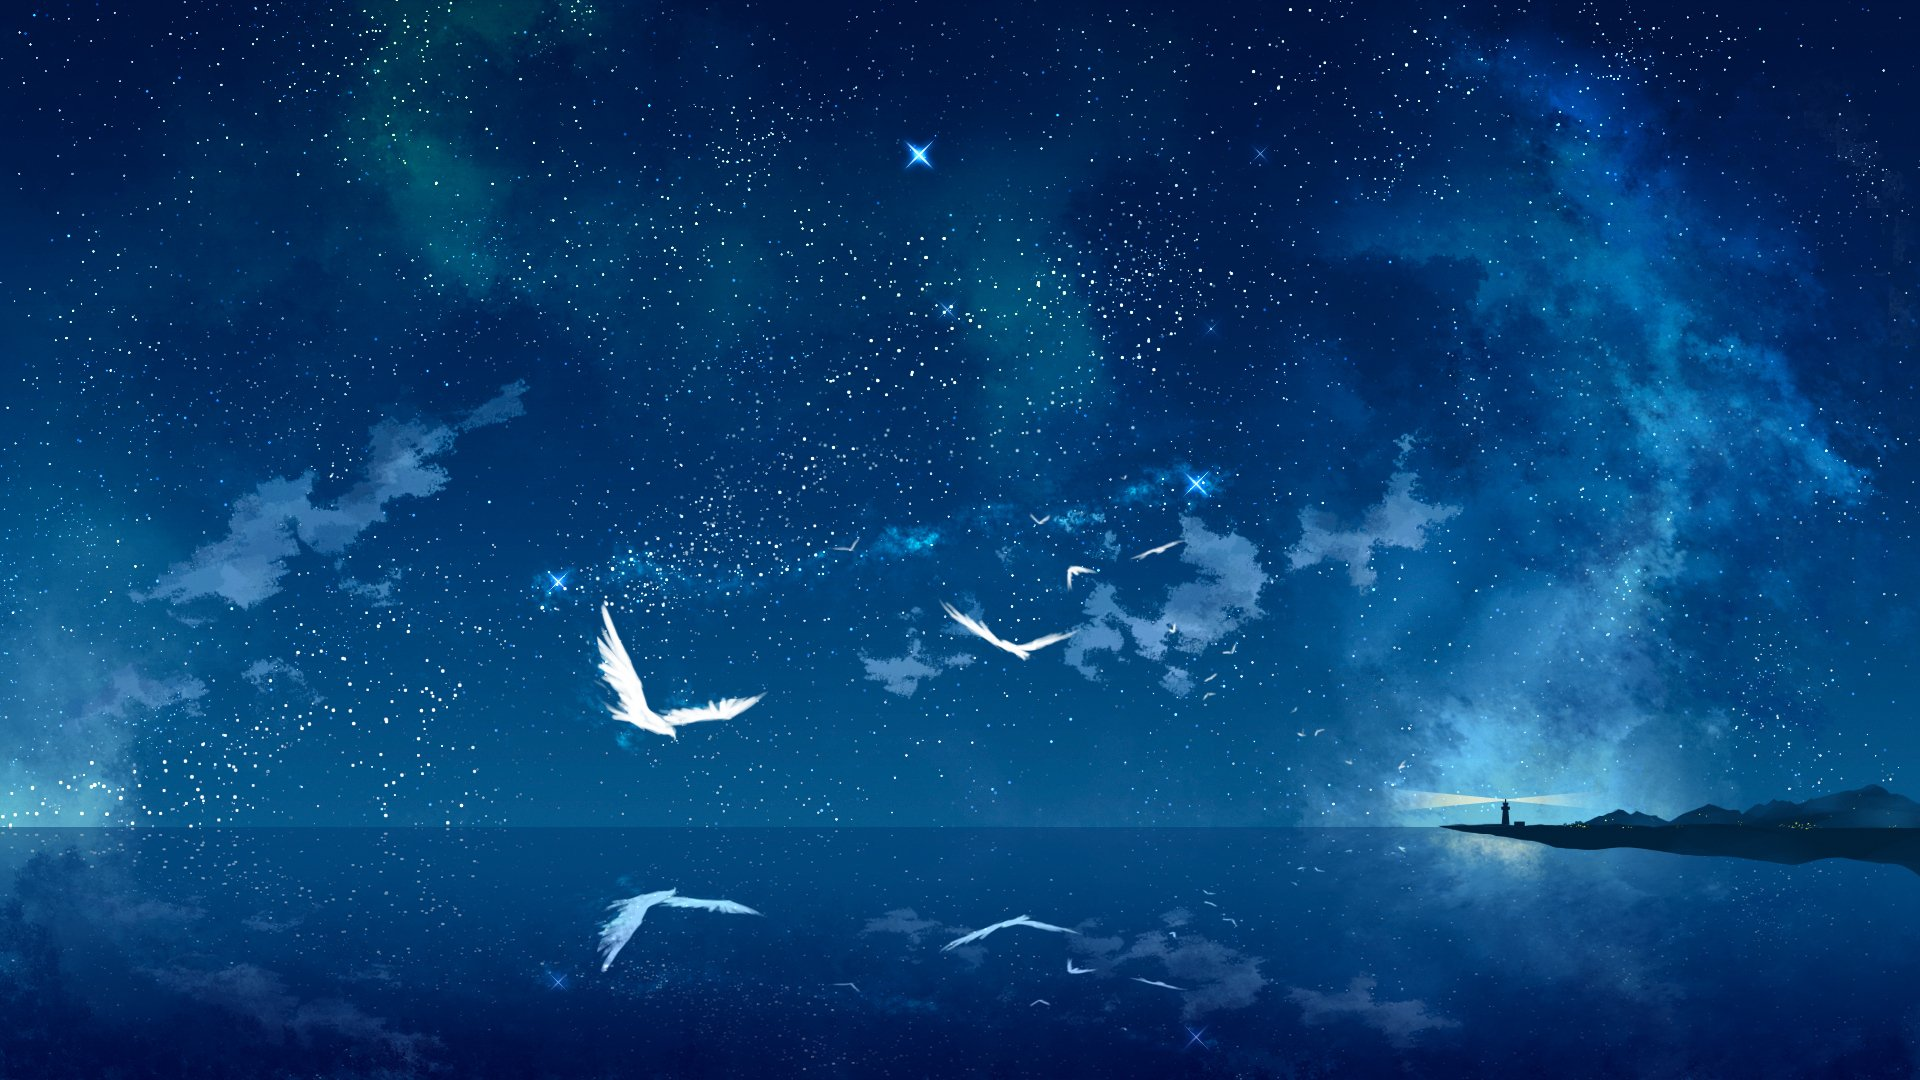 Sky Anime 391 Starry Sky Hd Wallpapers Background Images Wallpaper Abyss